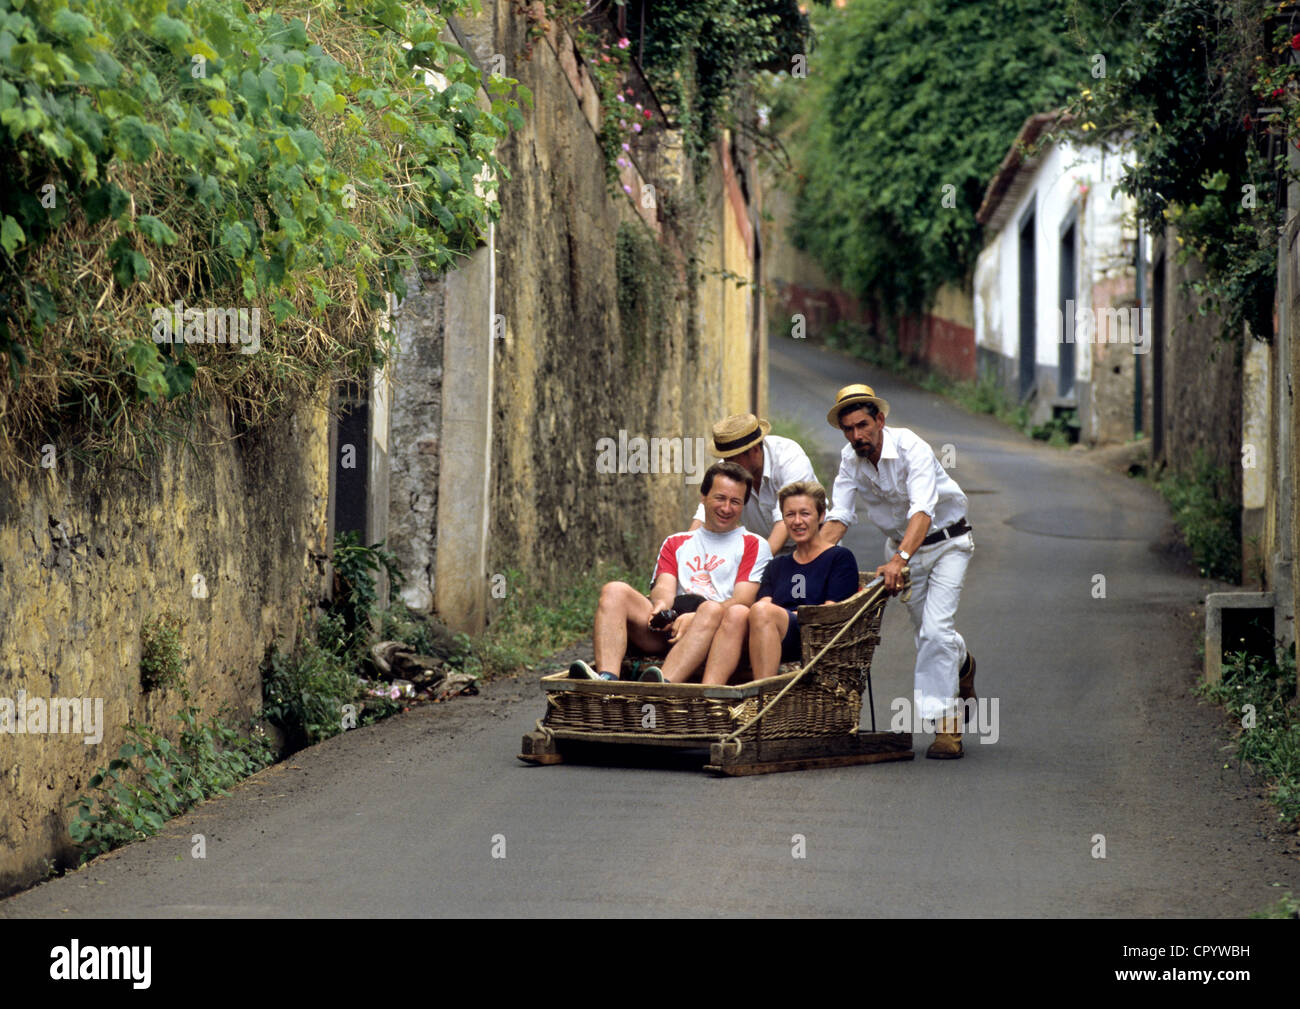 Portugal, Madeira Island, Funchal, playing on a toboggan sledg locally known as Monte - Stock Image